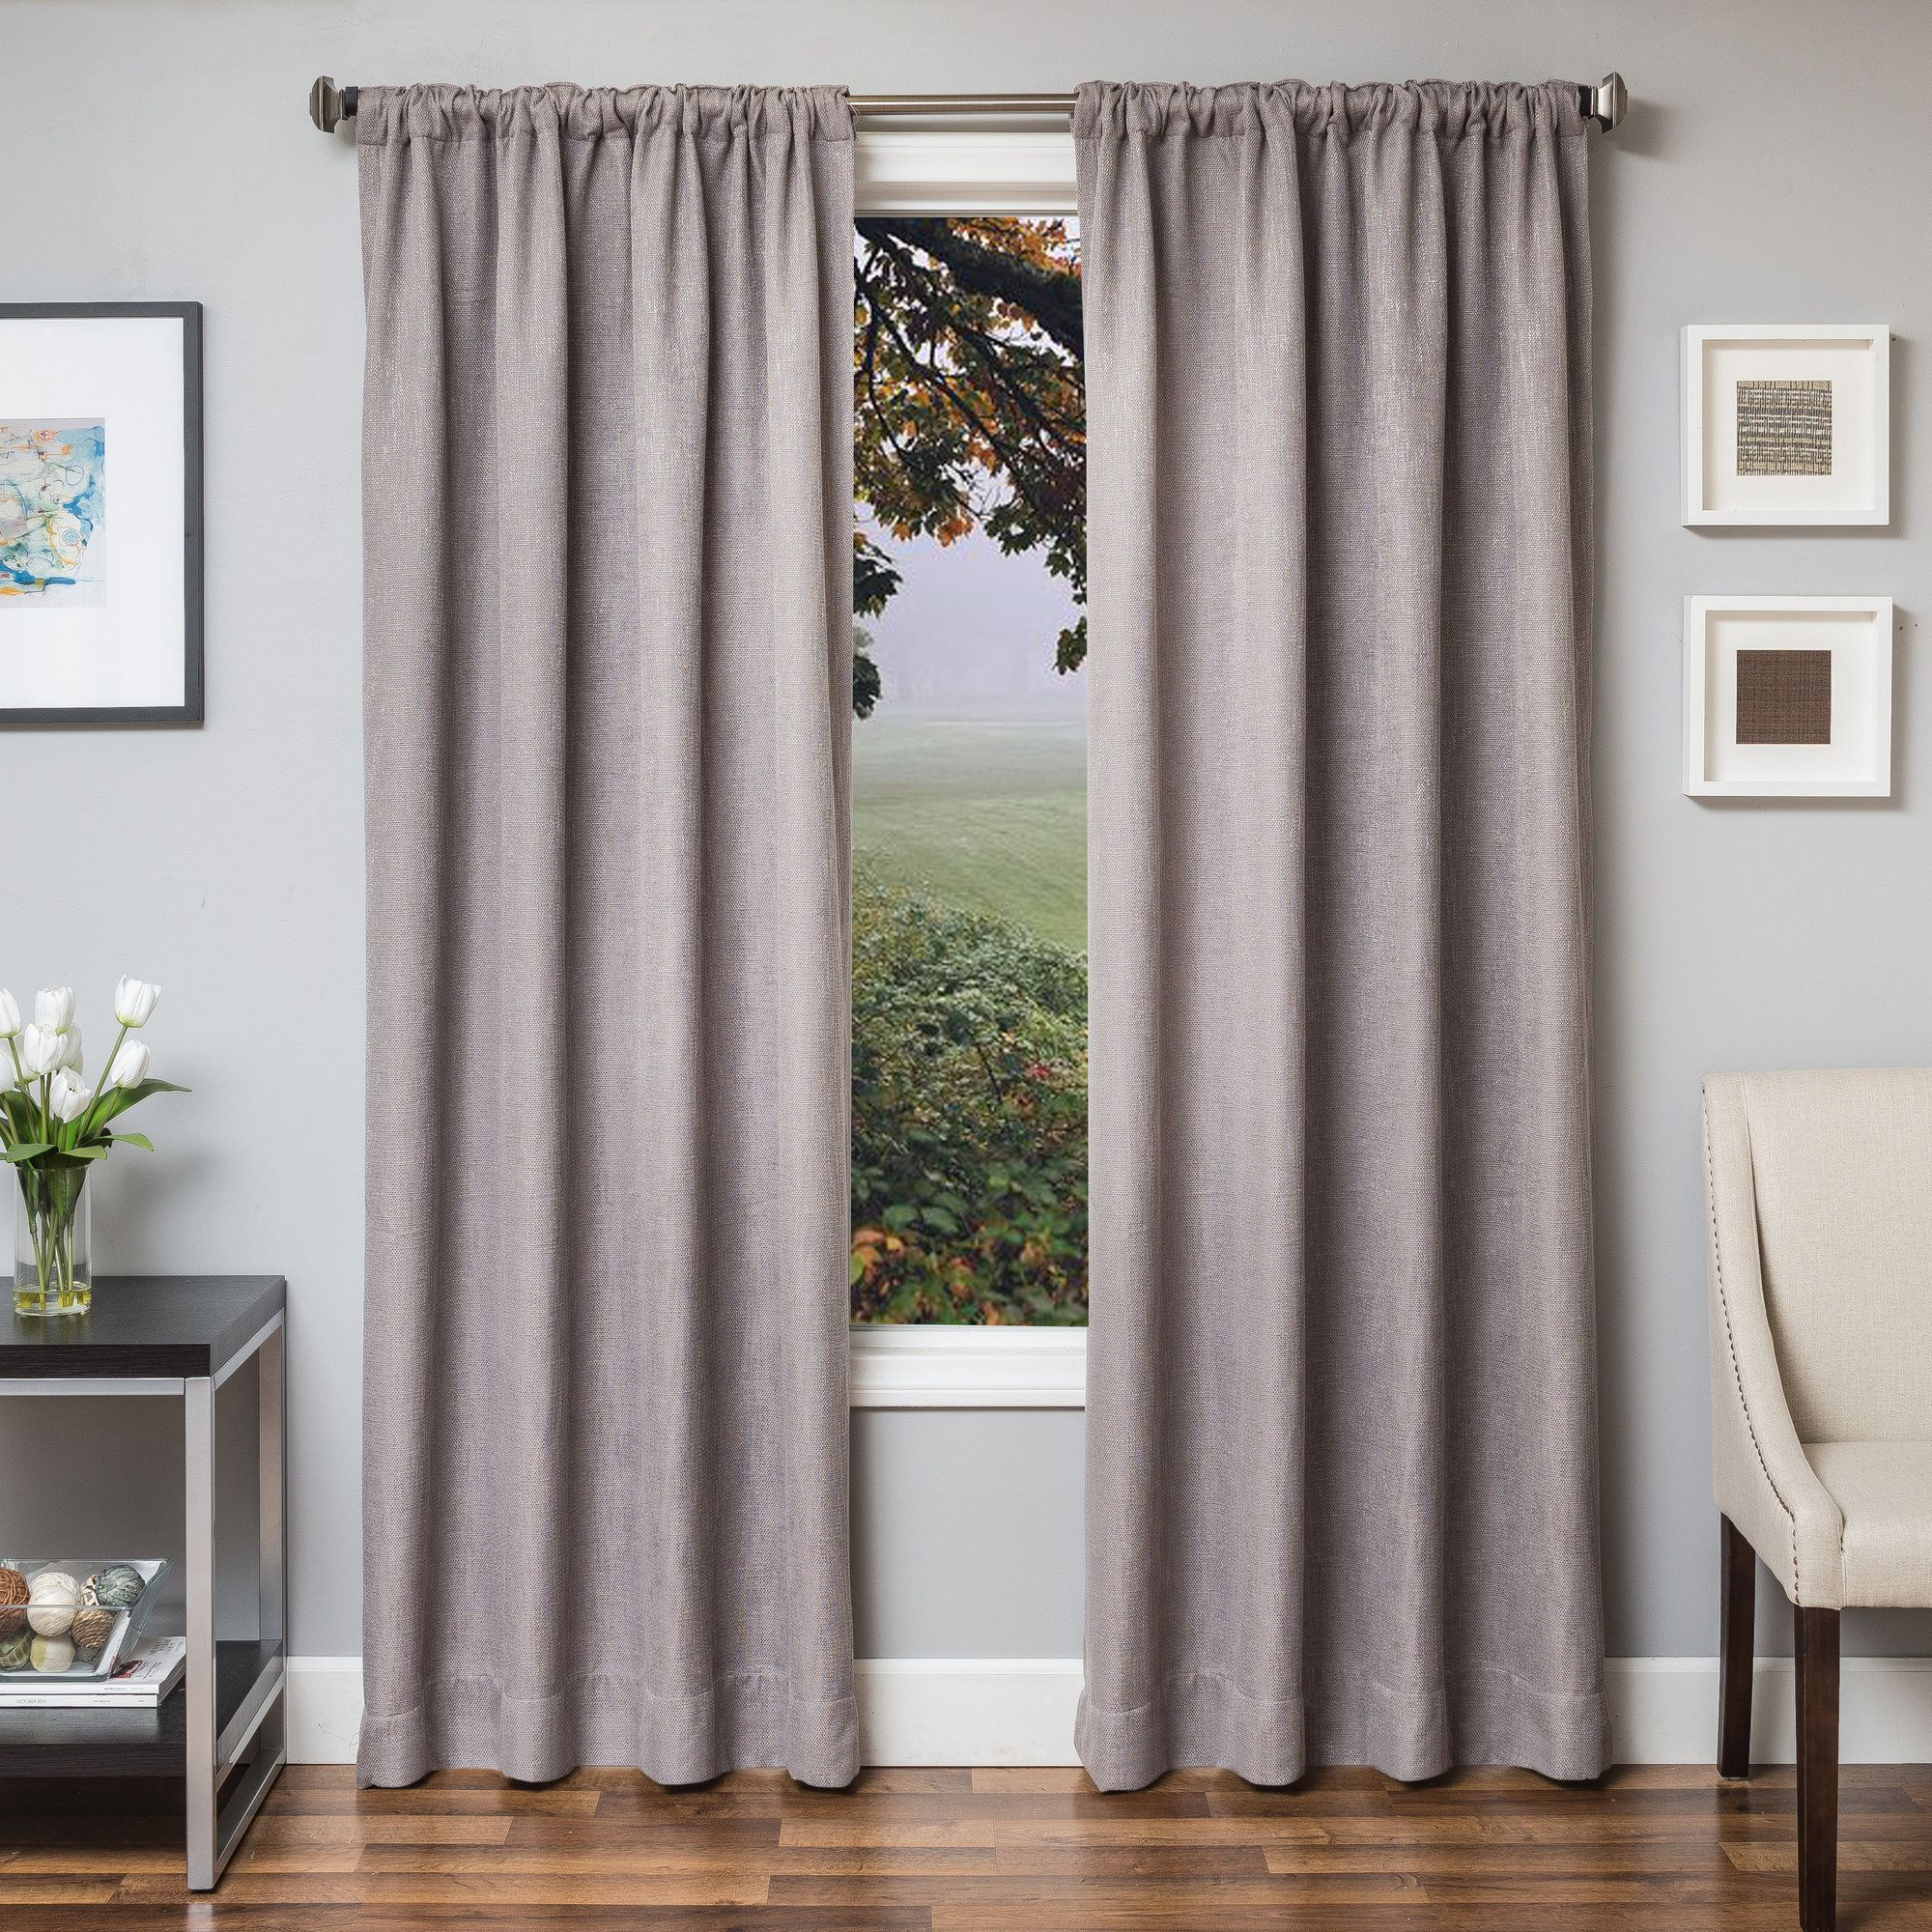 San jacinto single curtain panel products pinterest products